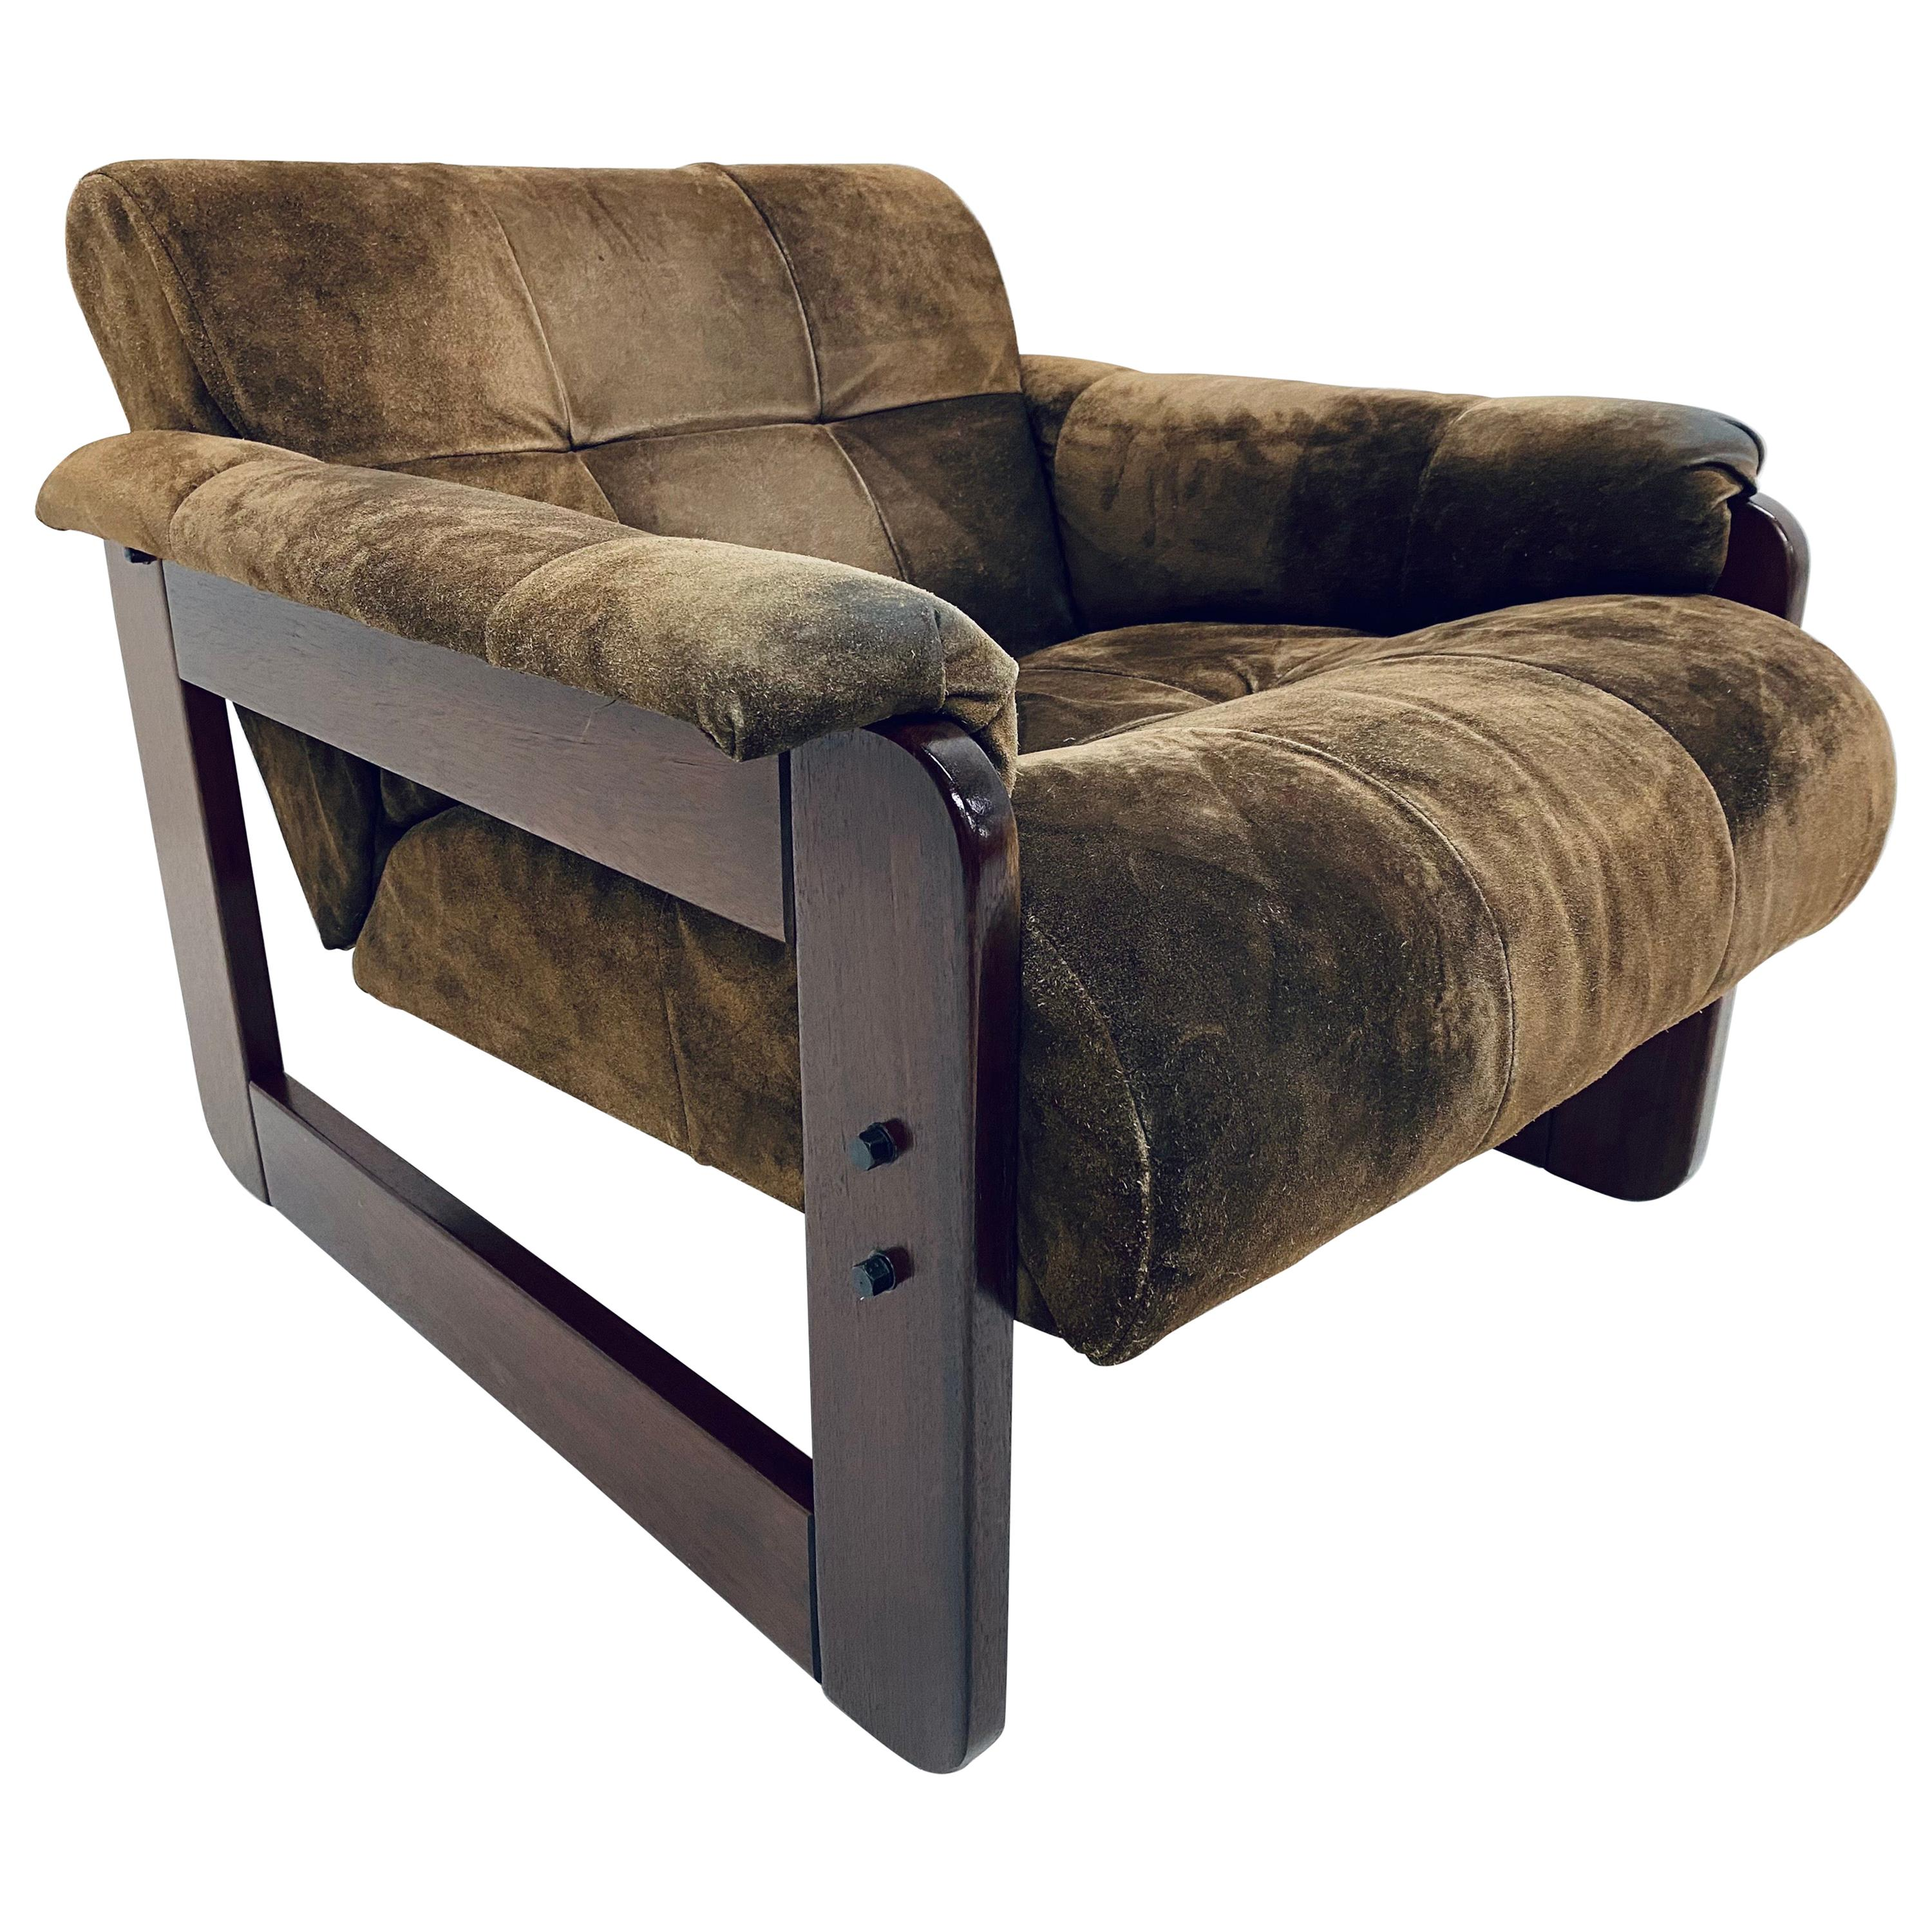 Percival Lafer Midcentury Brazilian Brown Suede and Rosewood Lounge Chair